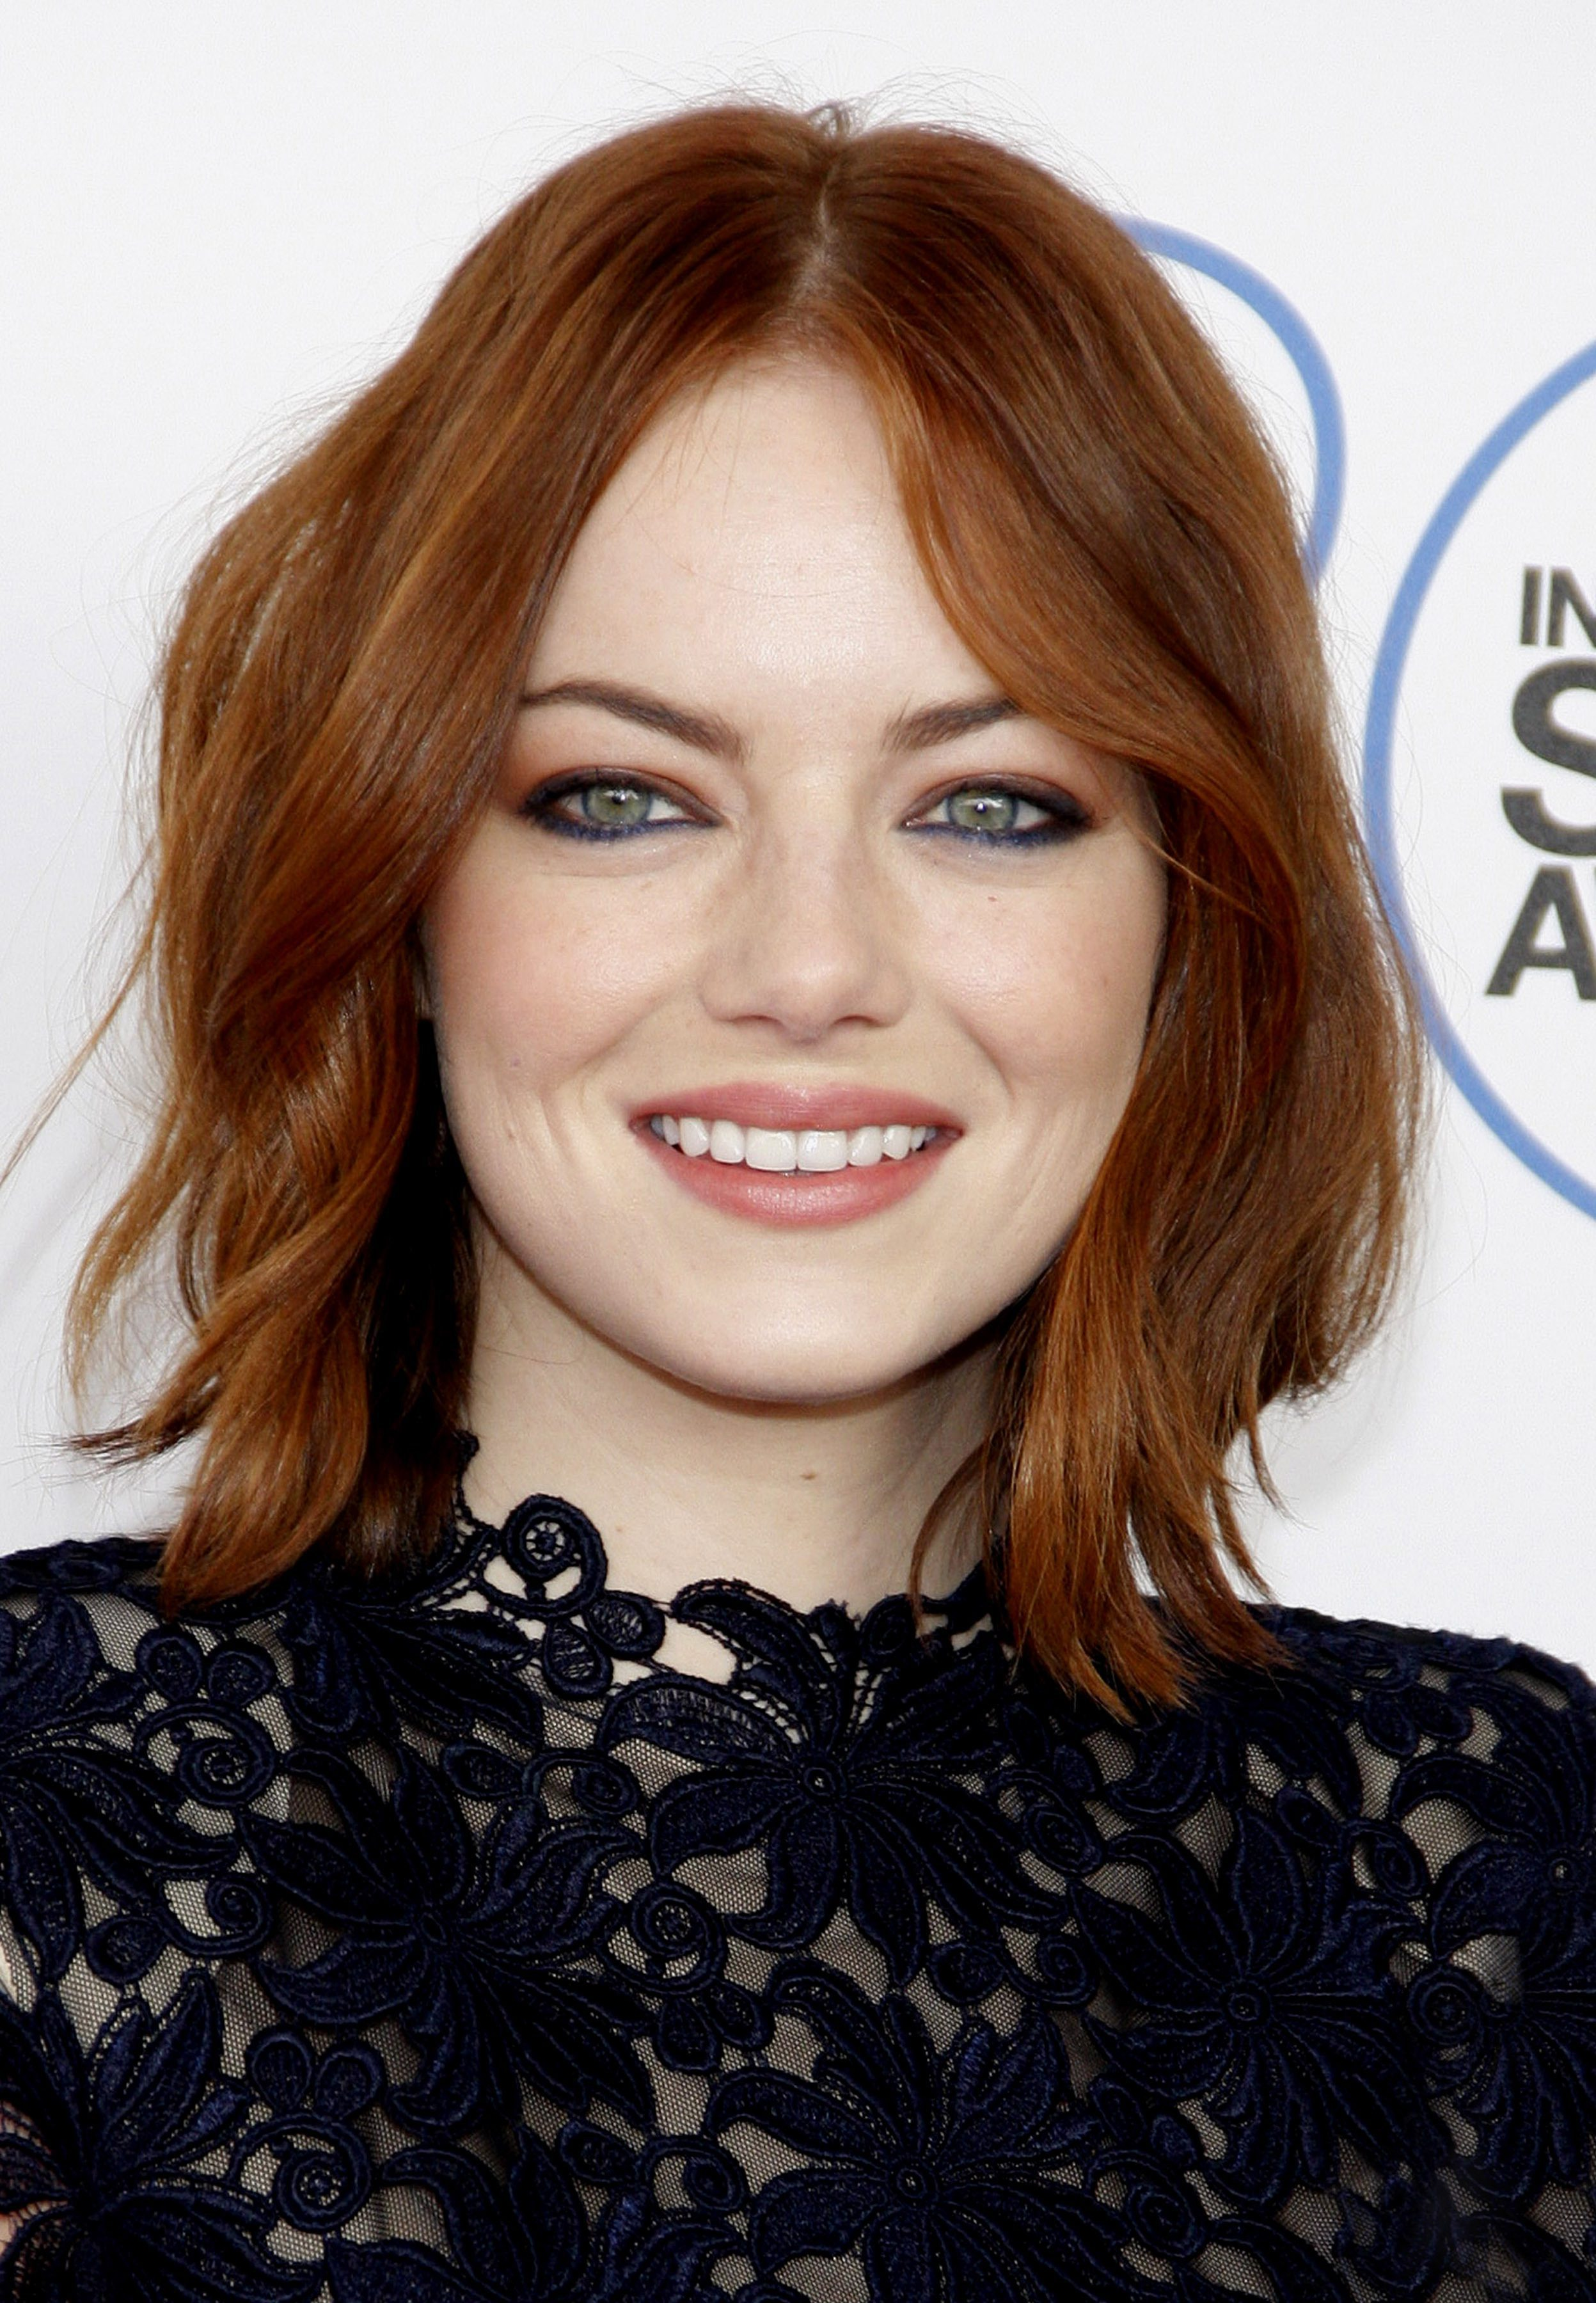 Emma Stone's Red Hair with Caramel Highlights